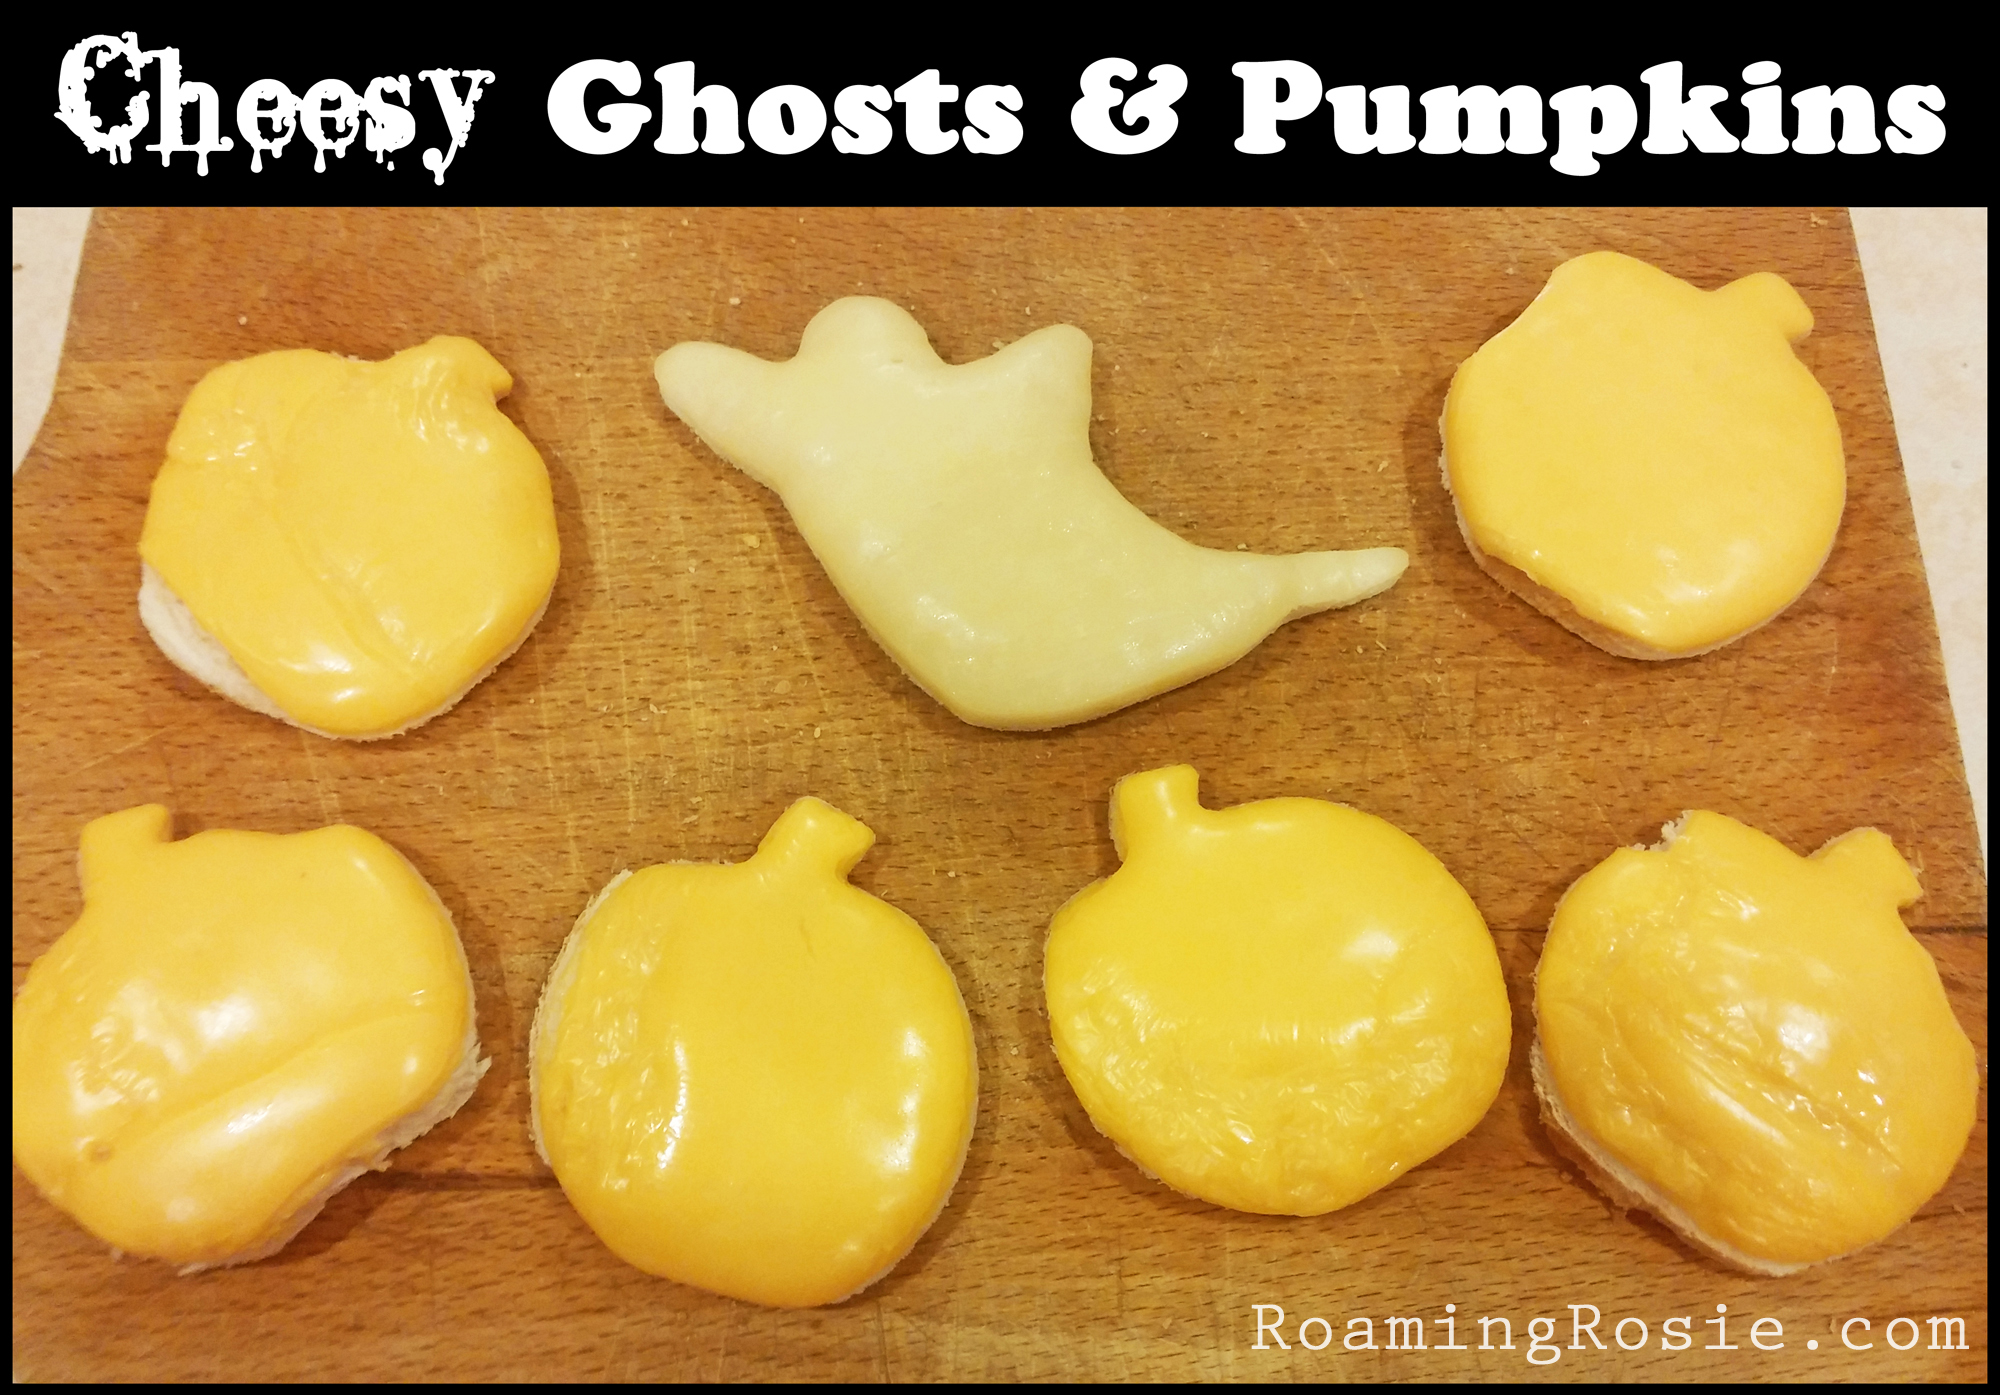 Halloween Cheesy Ghosts and Pumpkins open faced sandwiches